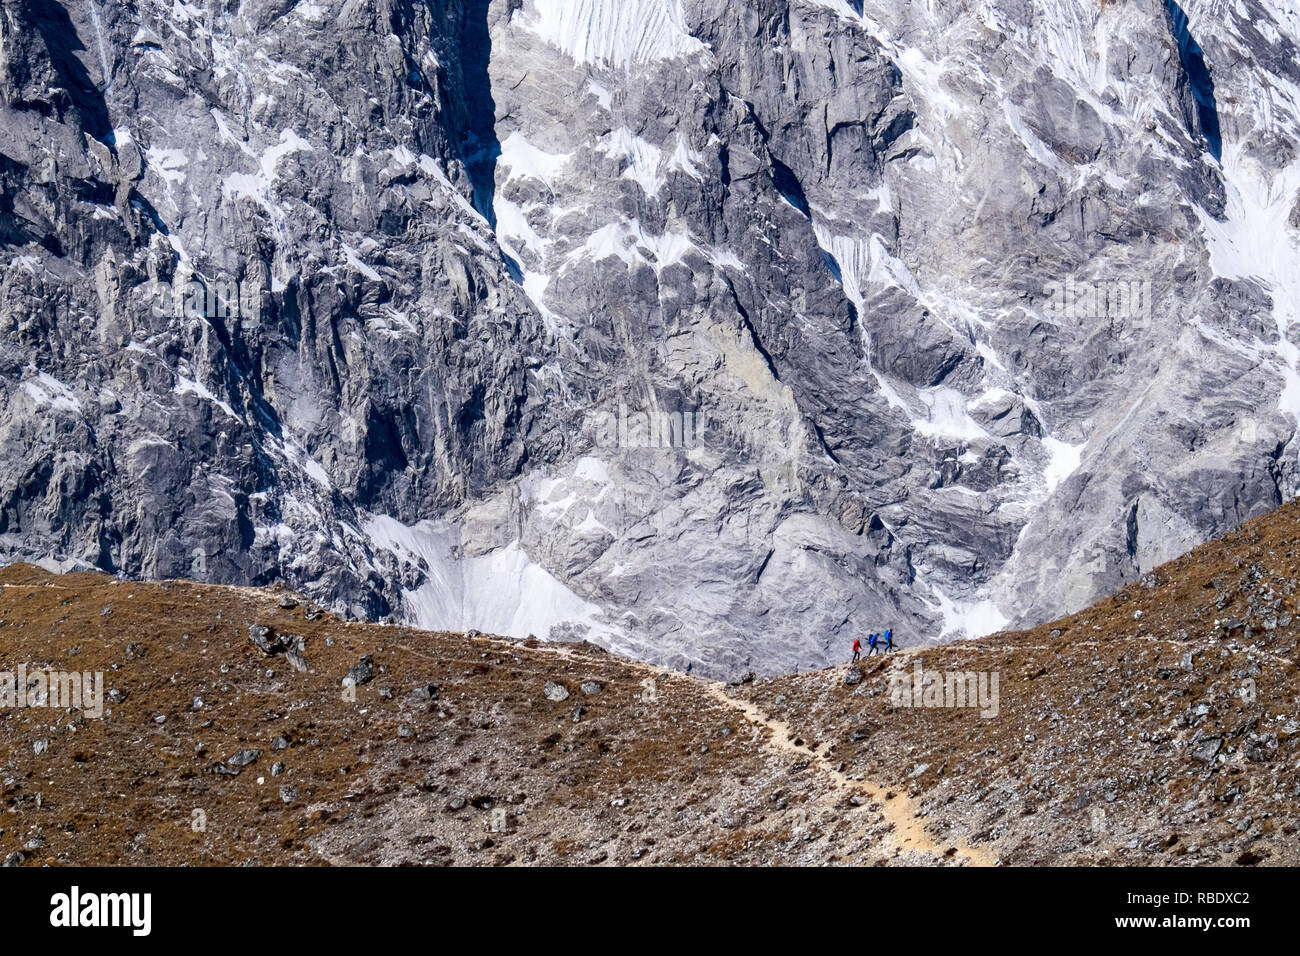 Trekkers on Kyanjin Ri, a popular viewpoint on the Langtang Trek, Nepal - Stock Image